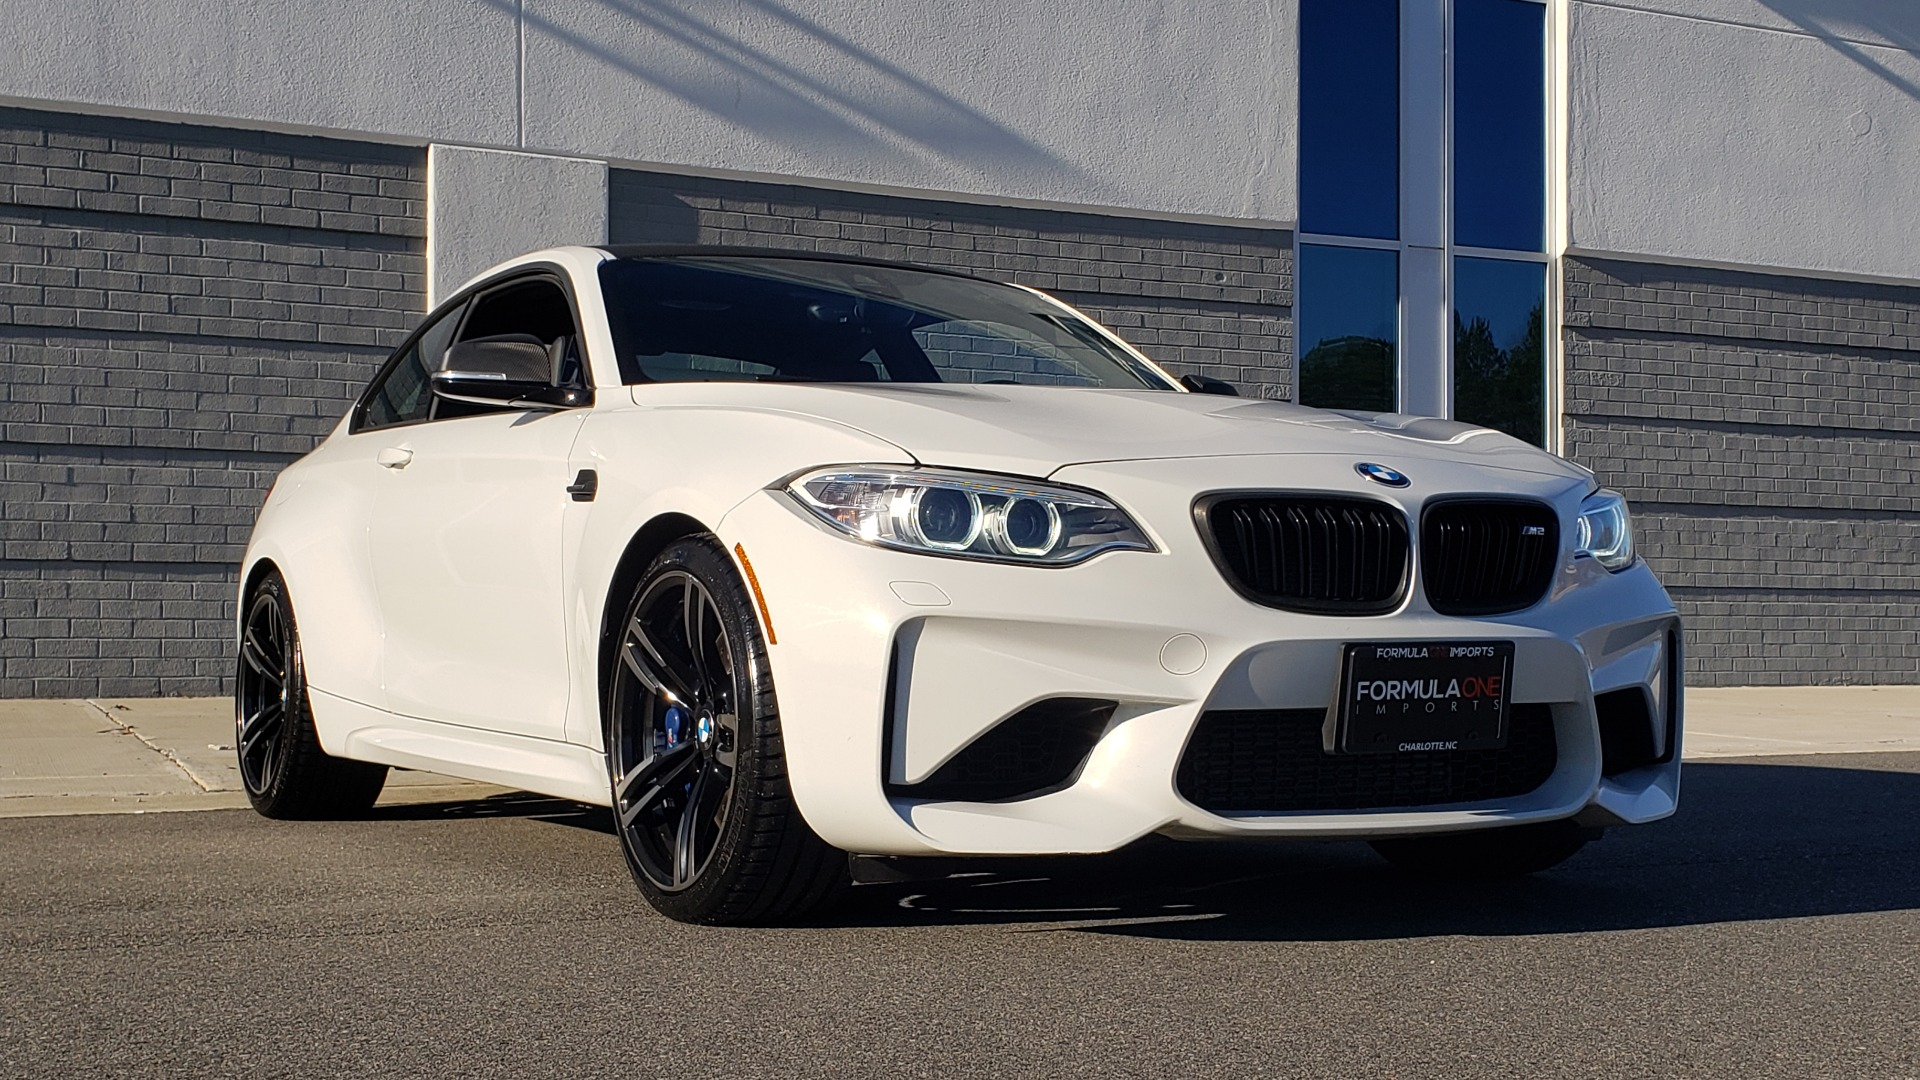 Used 2017 BMW M2 COUPE / MANUAL / EXEC PKG / NAV / WIFI / PDC / REARVIEW for sale Sold at Formula Imports in Charlotte NC 28227 15